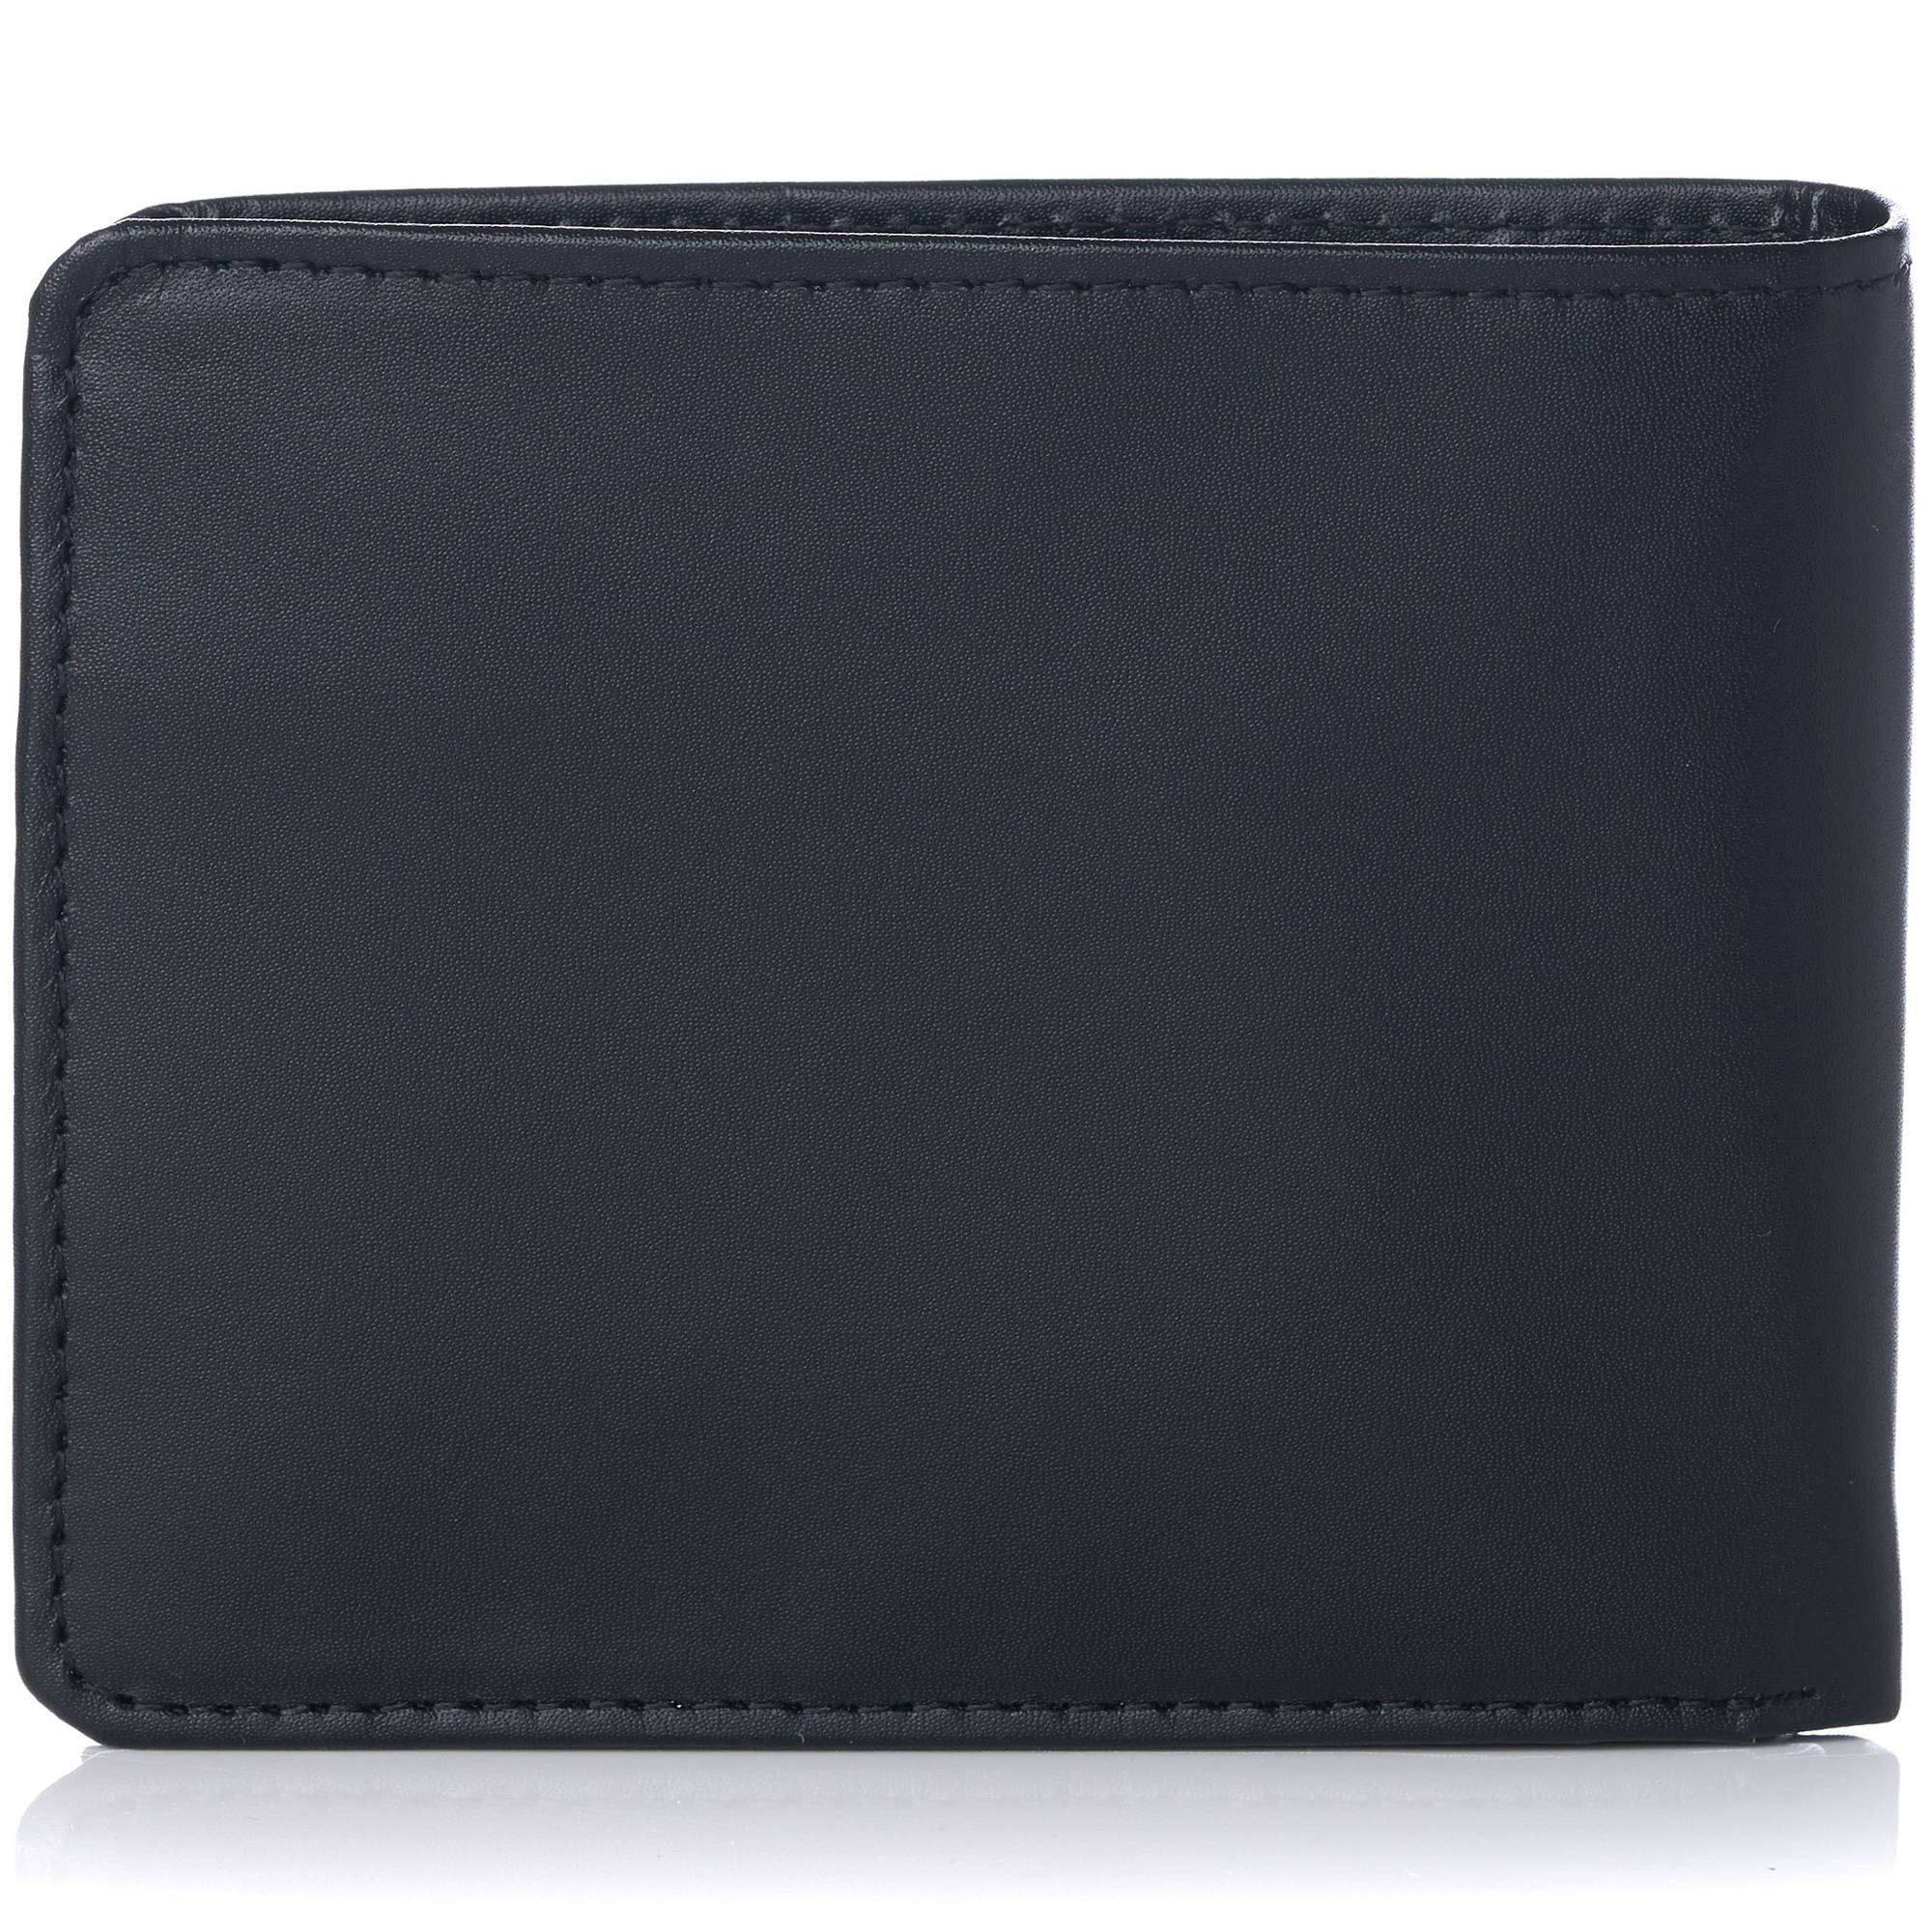 miniature 17 - Alpine-Swiss-RFID-Mens-Wallet-Deluxe-Capacity-Passcase-Bifold-Two-Bill-Sections